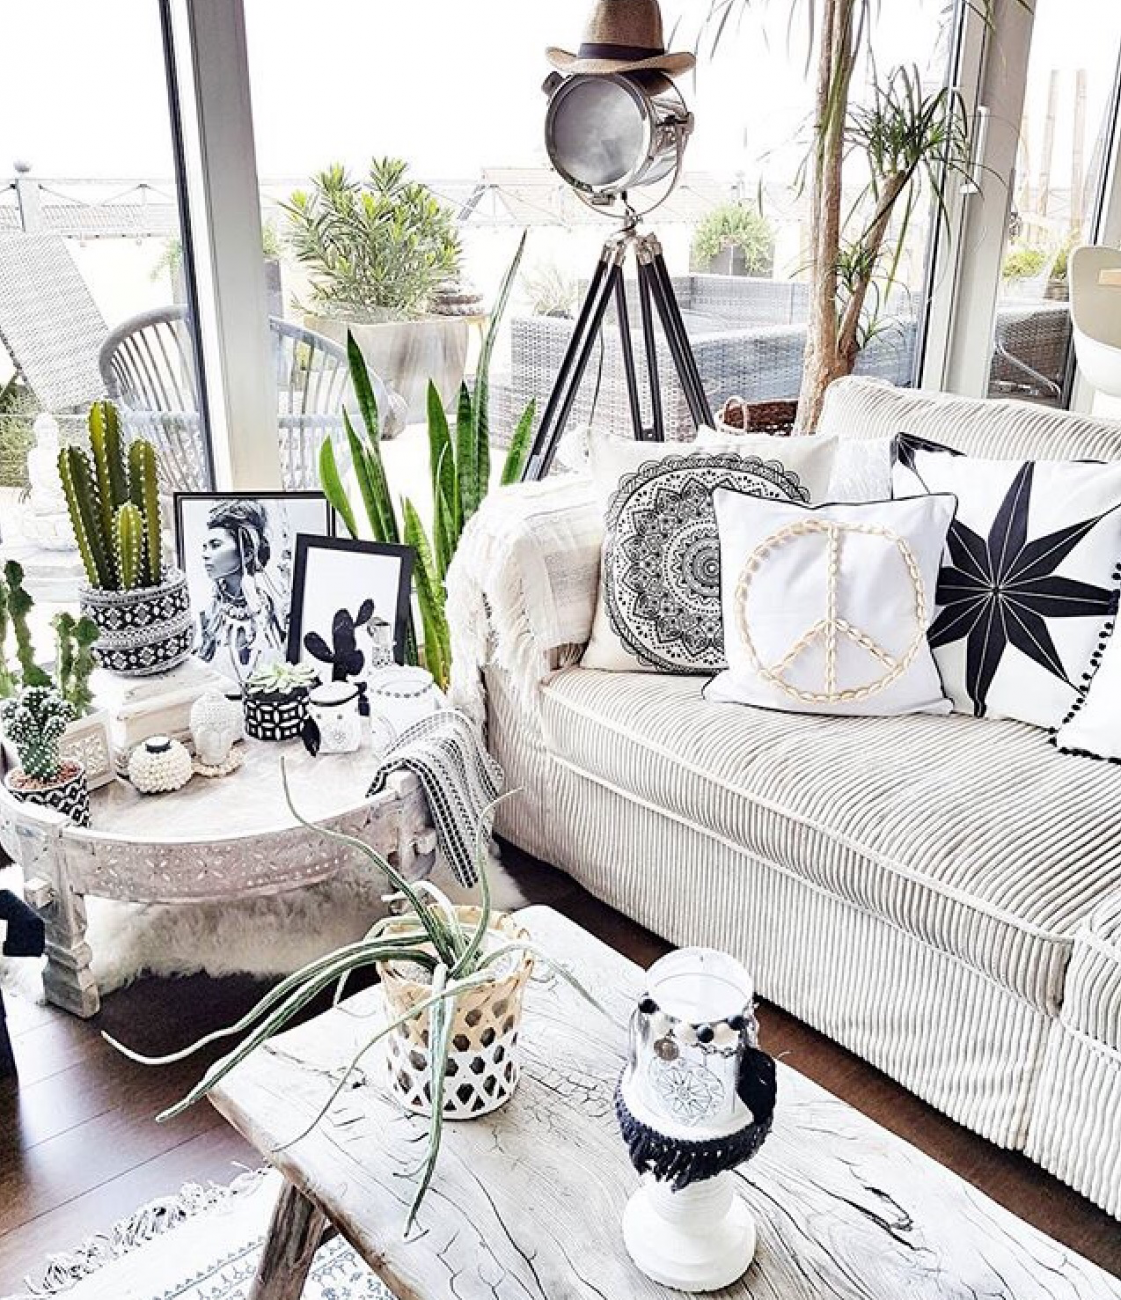 We kick off this new series of House of Instagram with the ubber gorgeous Claudia from @belliwood_boholiving. With her very distinctive monochrome Scandi boho style, Claudia wowed me instantly! She loves nothing more than to indulge in all sorts of DIY projects, making cushions with old stamps from Bali and many other boho home accessories which can be difficult to source in Germany. The result is an inspiring and individual home captured beautifully by Claudia herself! Take a look...